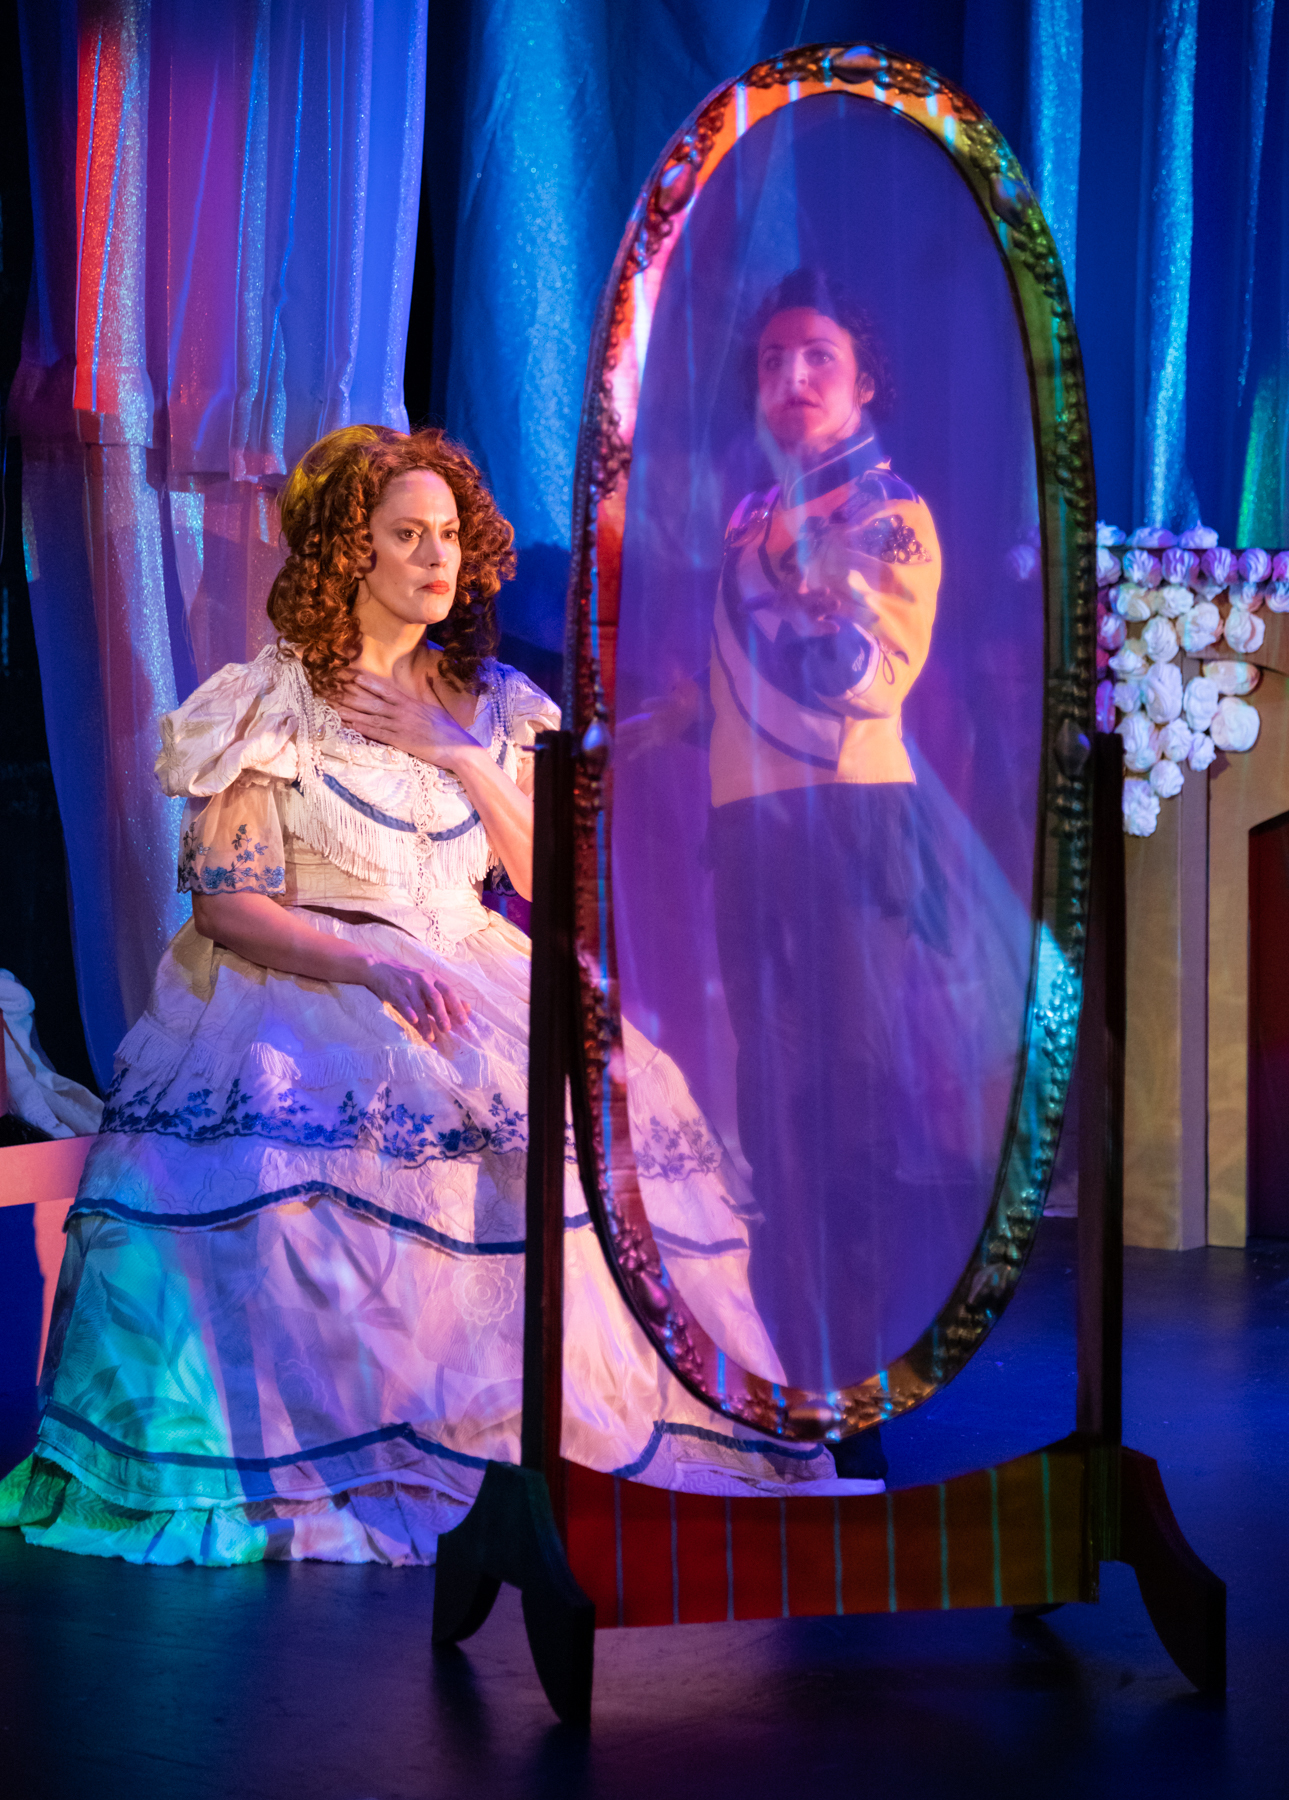 BWW Review: The Notorious Courtesan MADAME LYNCHIs Depicted In An Incomprehensible Spectacle With Music